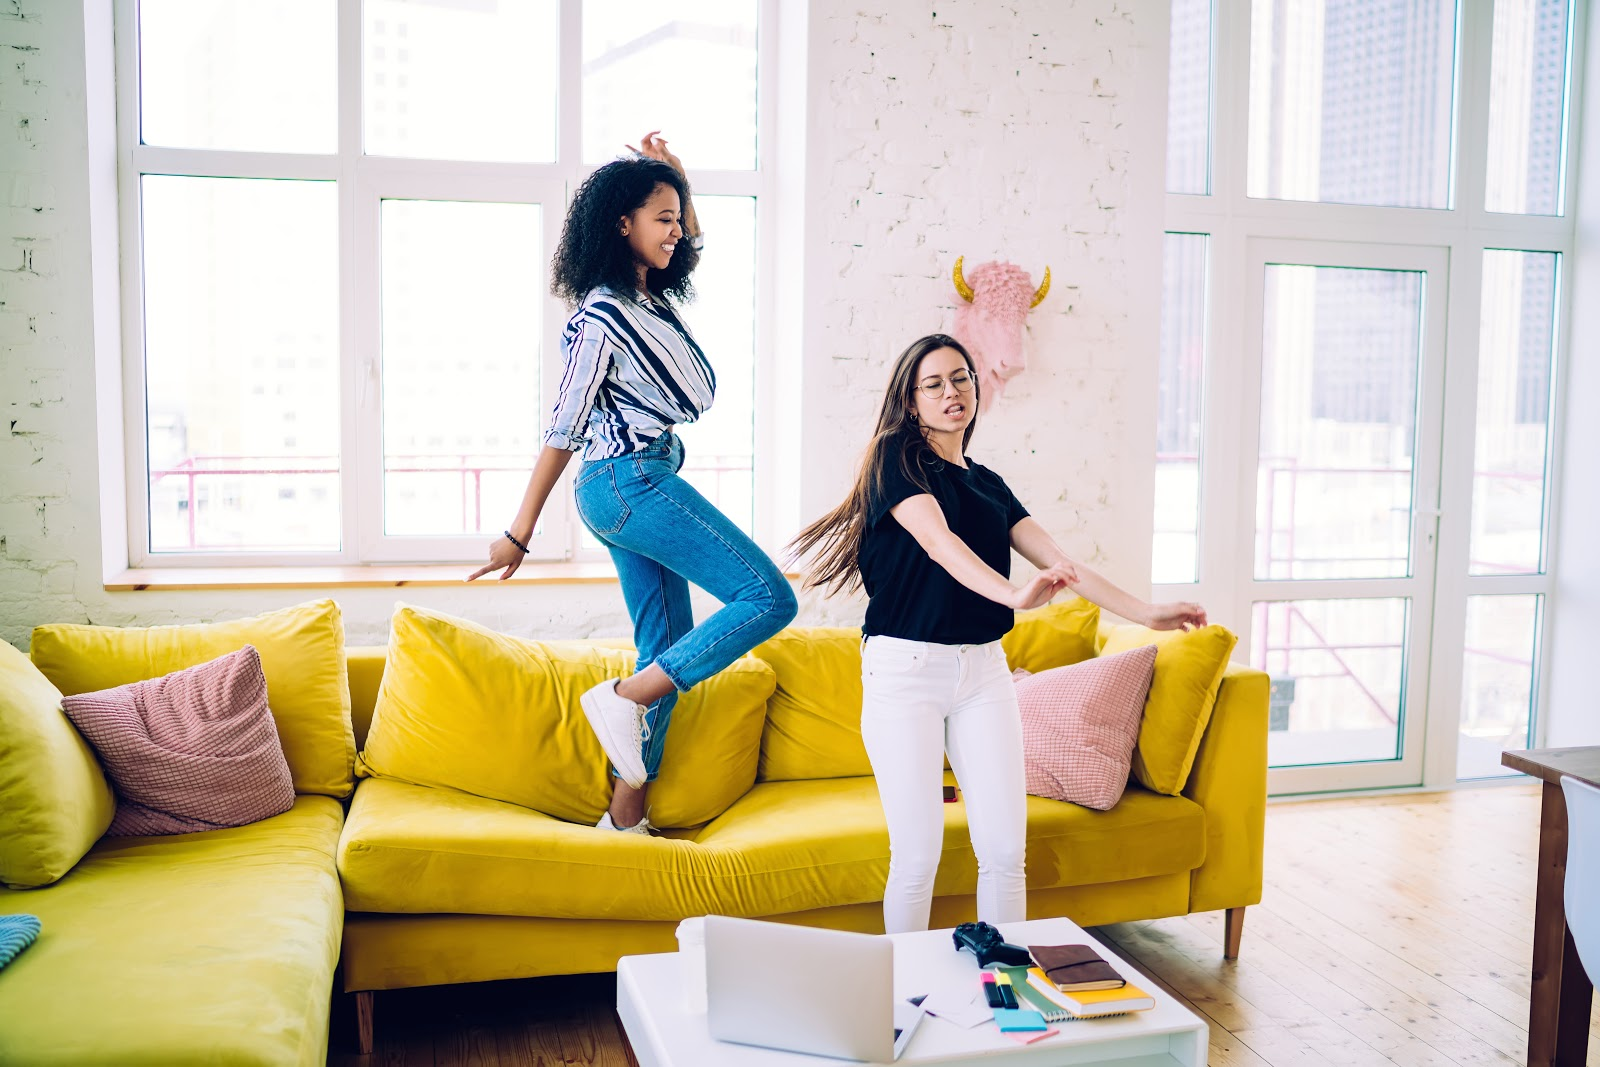 Virtual fundraiser: Two woman dance together in a living room